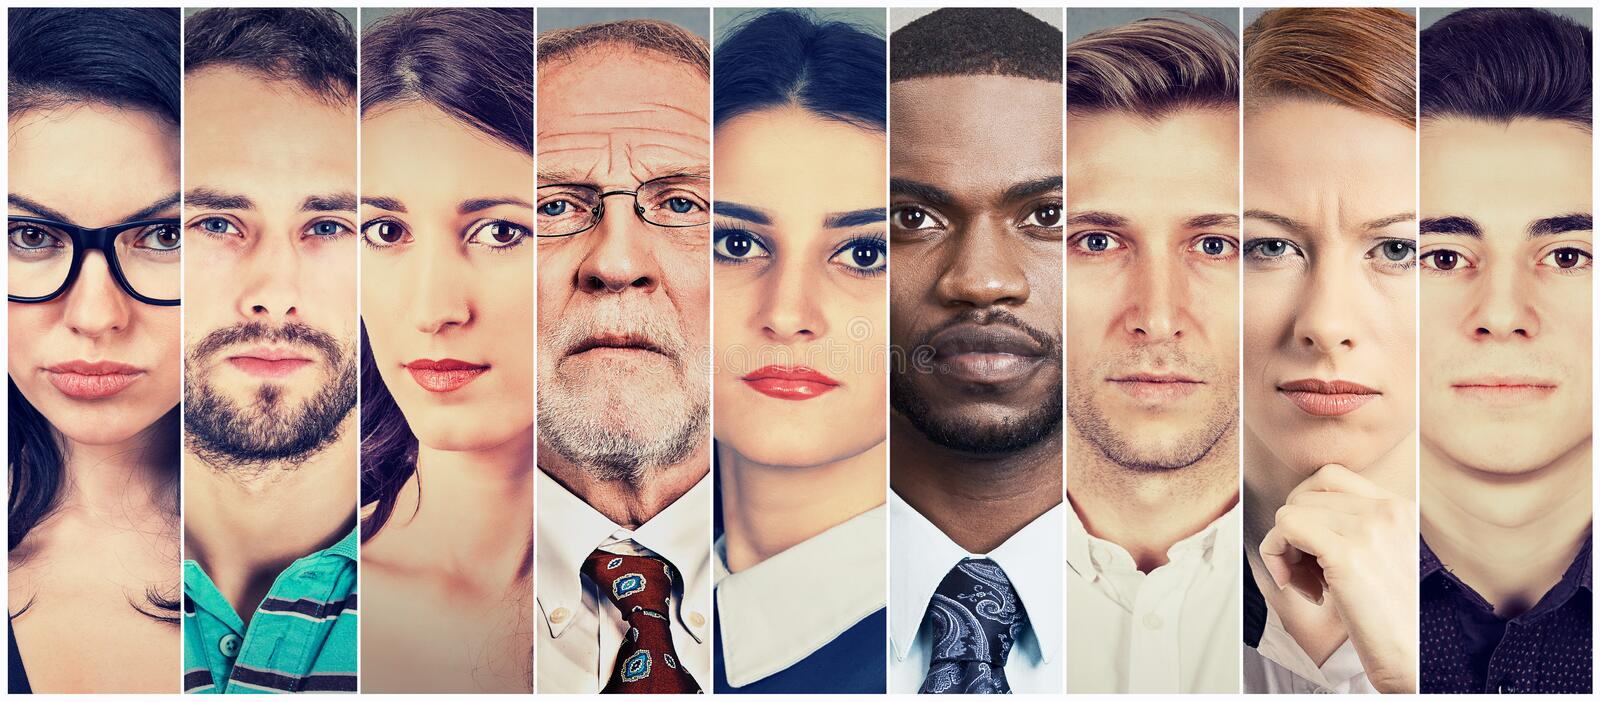 Multiethnic group of serious people stock image